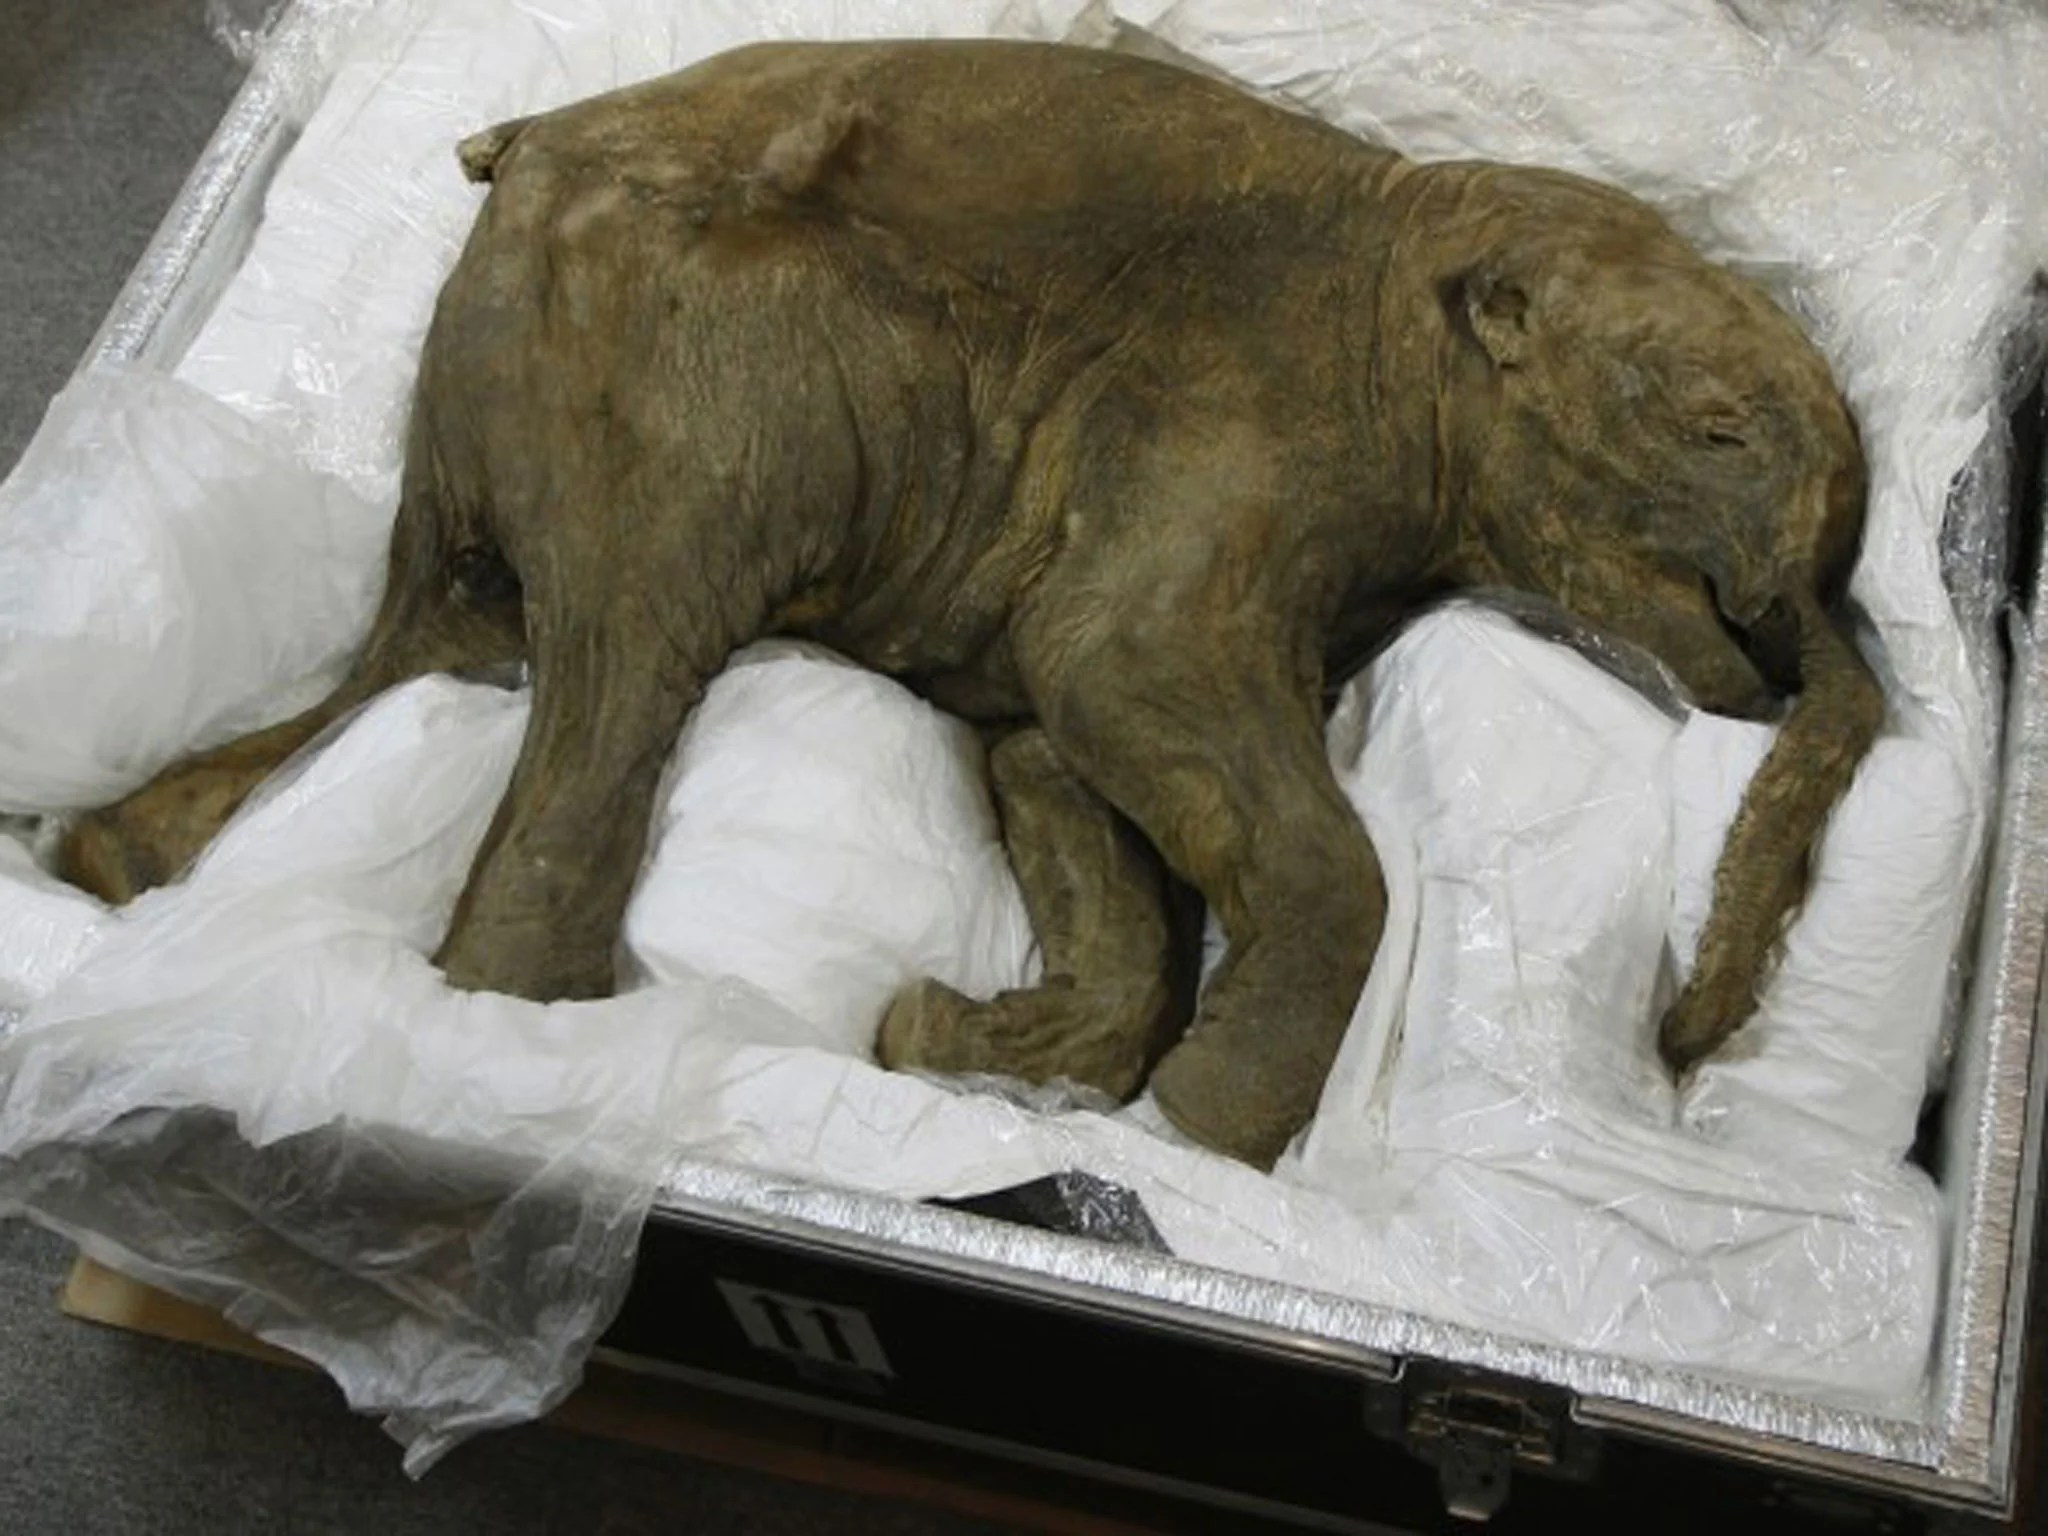 Worlds most complete preserved mammoth to go on display in London  The Independent